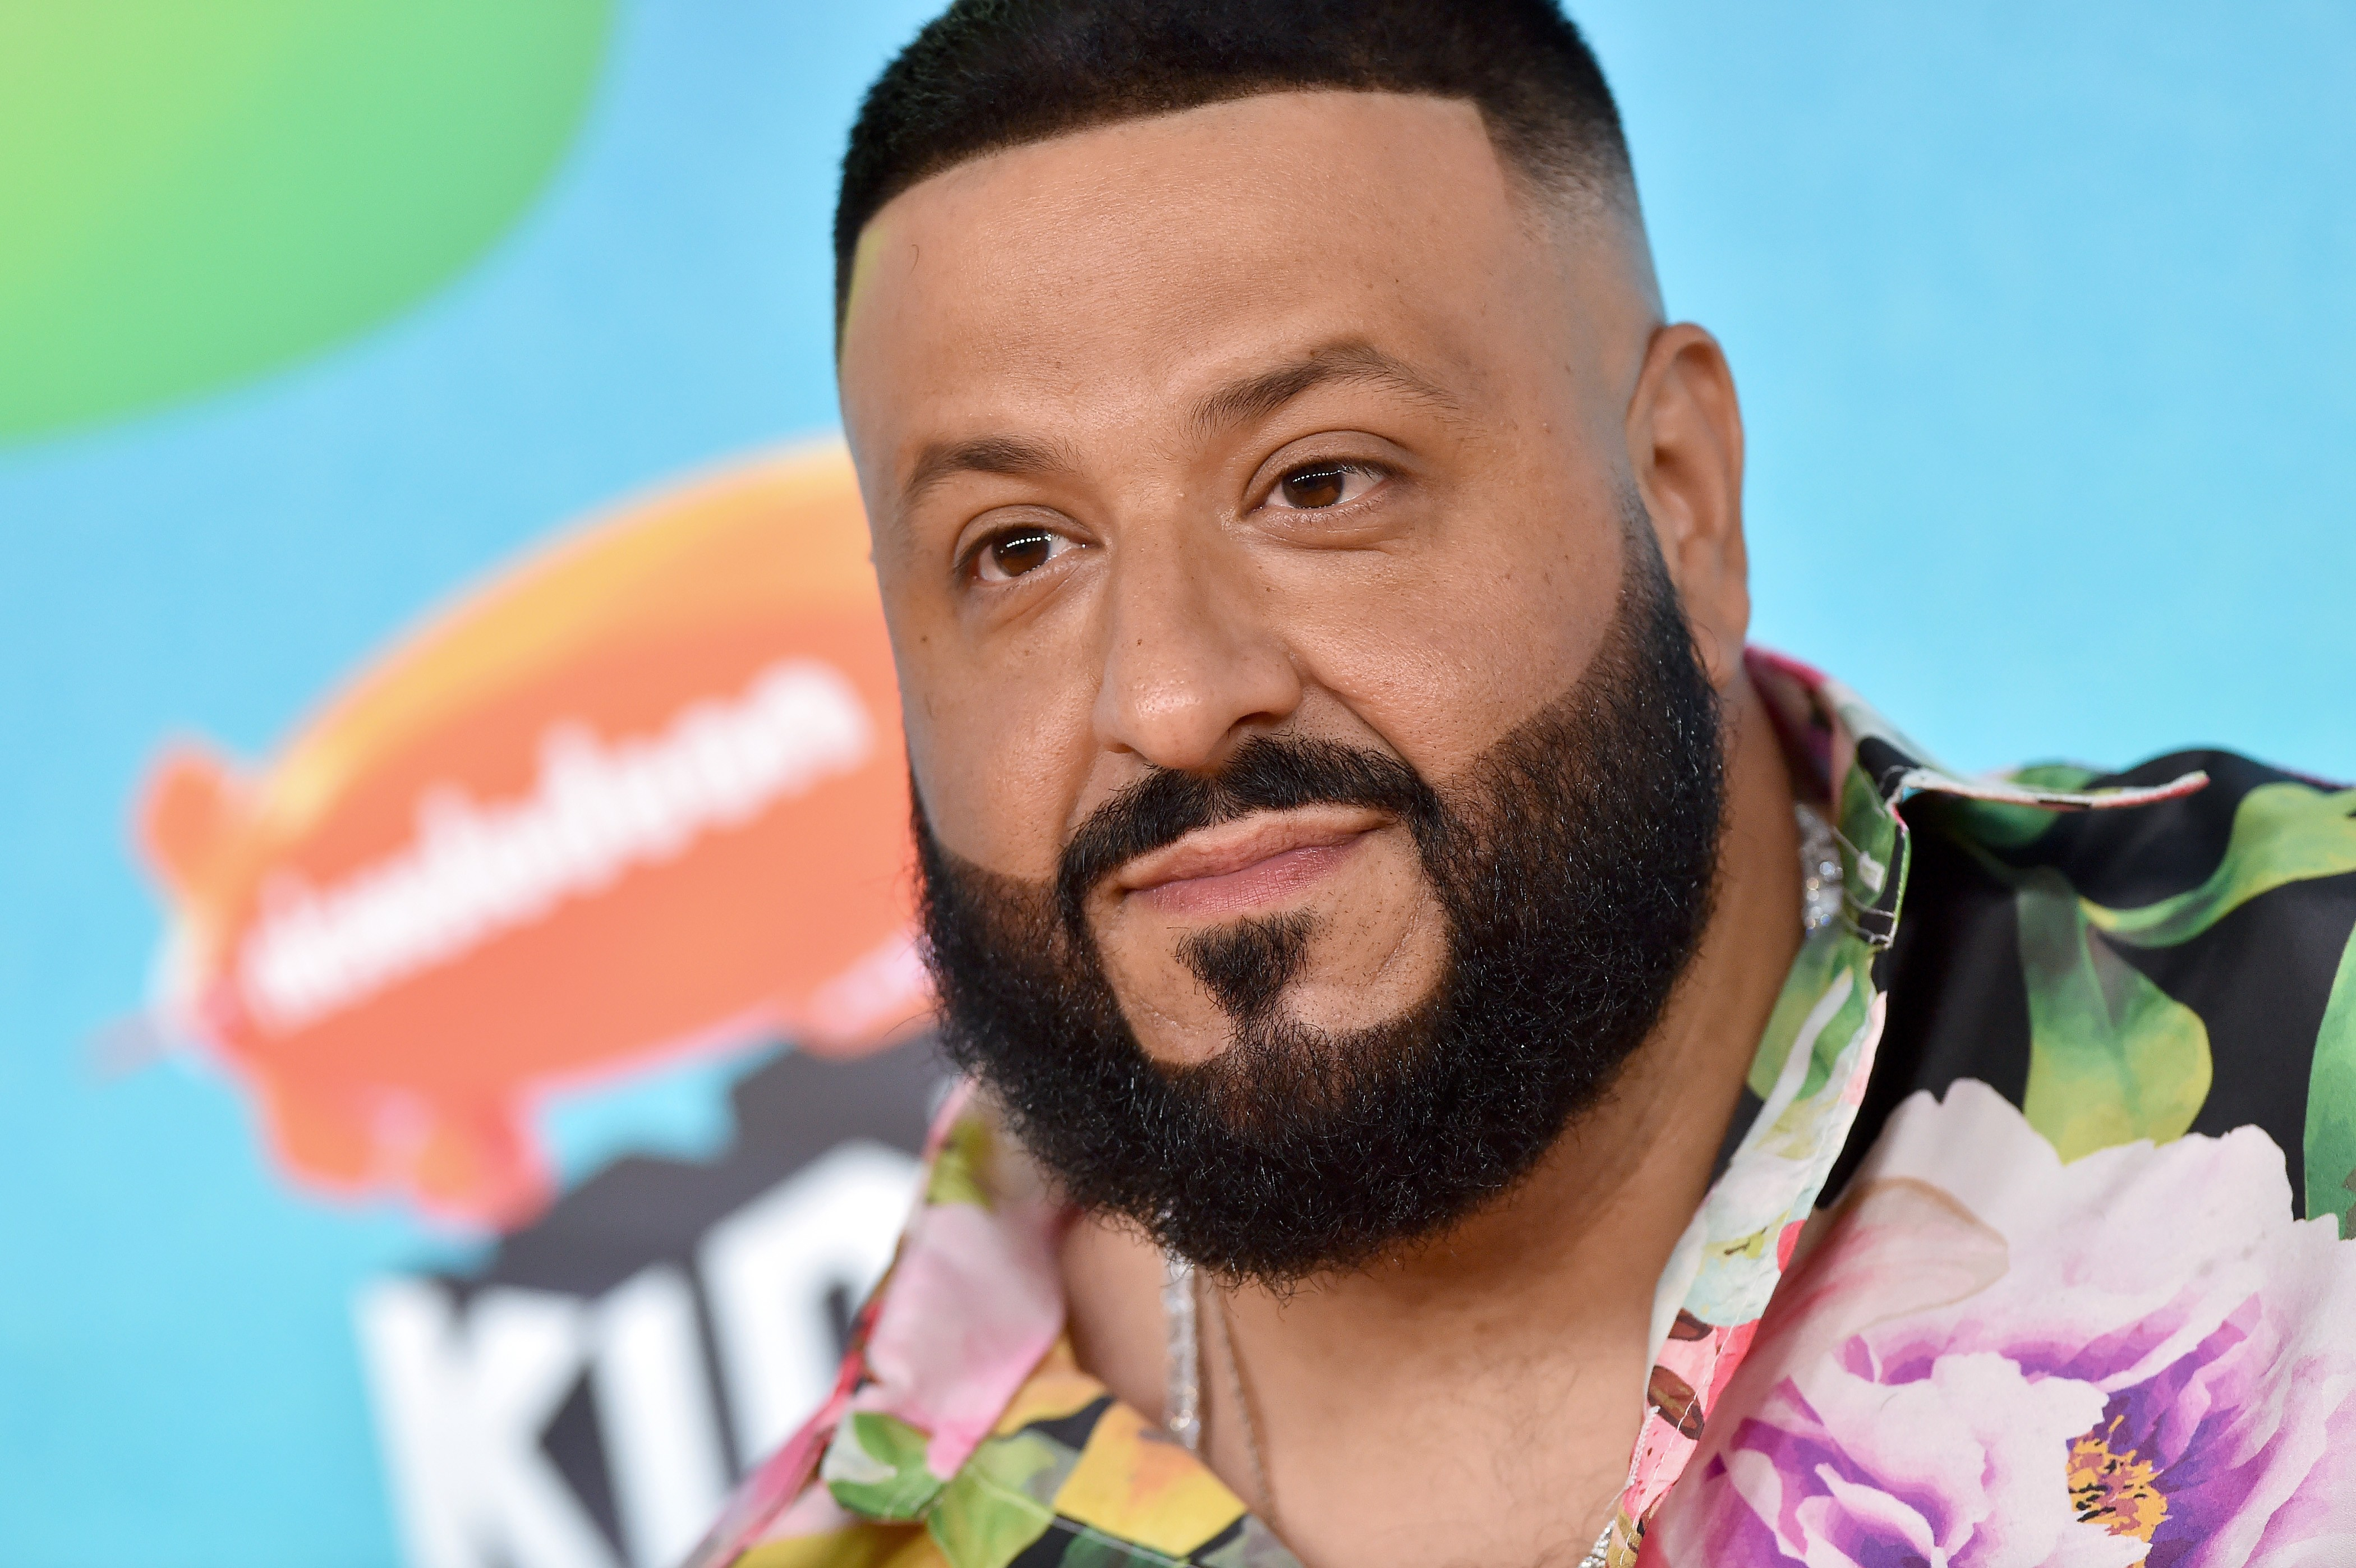 dj-khaled-appears-to-shade-tyler-the-creator-for-beating-him-to-1